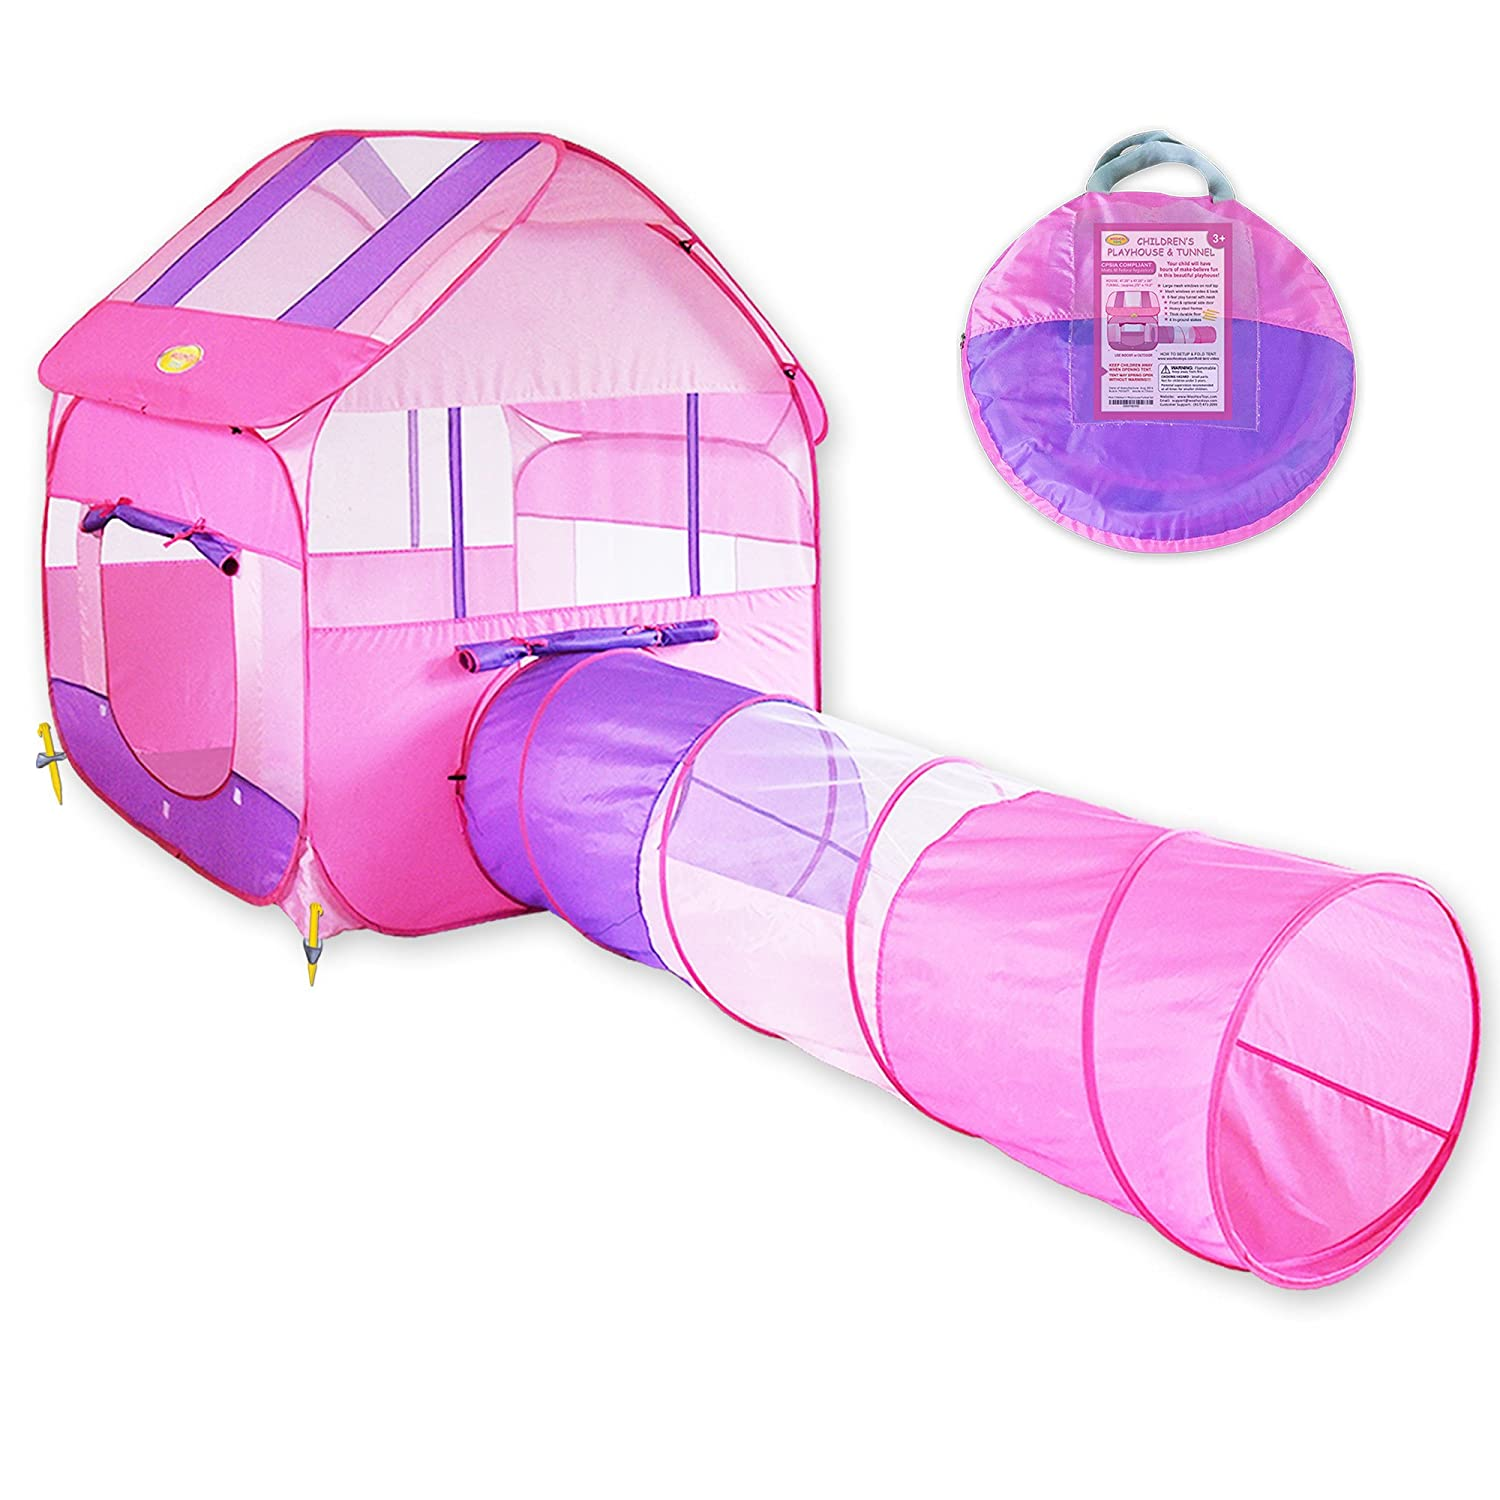 ... Thomas Pop Up Tent Tunnel Big Folding Slide Pink Kids. 2017 On 1 Bright Pink Cat Castle Only Folding Portable Pet  sc 1 st  Best Tent 2017 & Pink Tent And Tunnel - Best Tent 2017